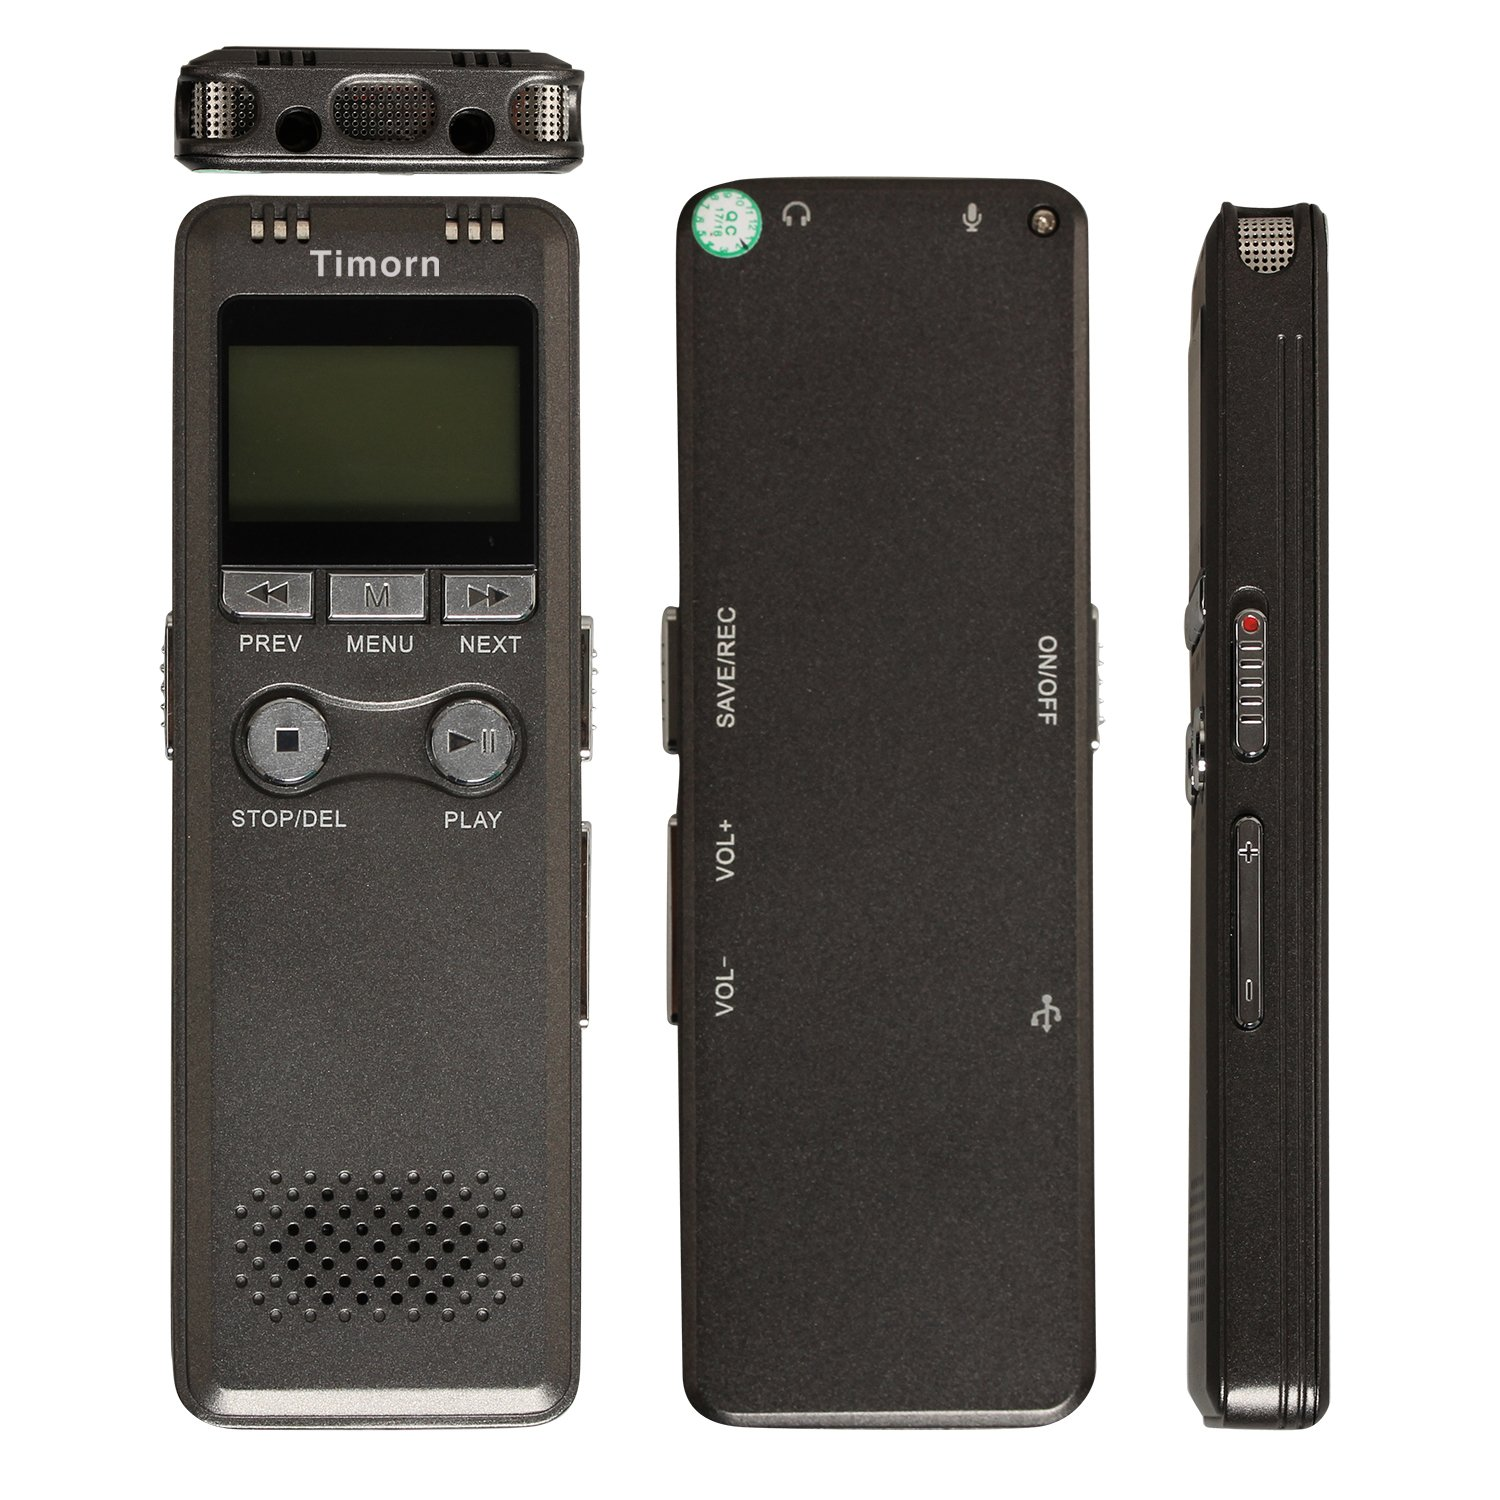 Timorn 8GB Portable Digital Voice Recorder Telephone MP3 Player USB Rechargeable Audio Recorder with LCD Display (Gray)